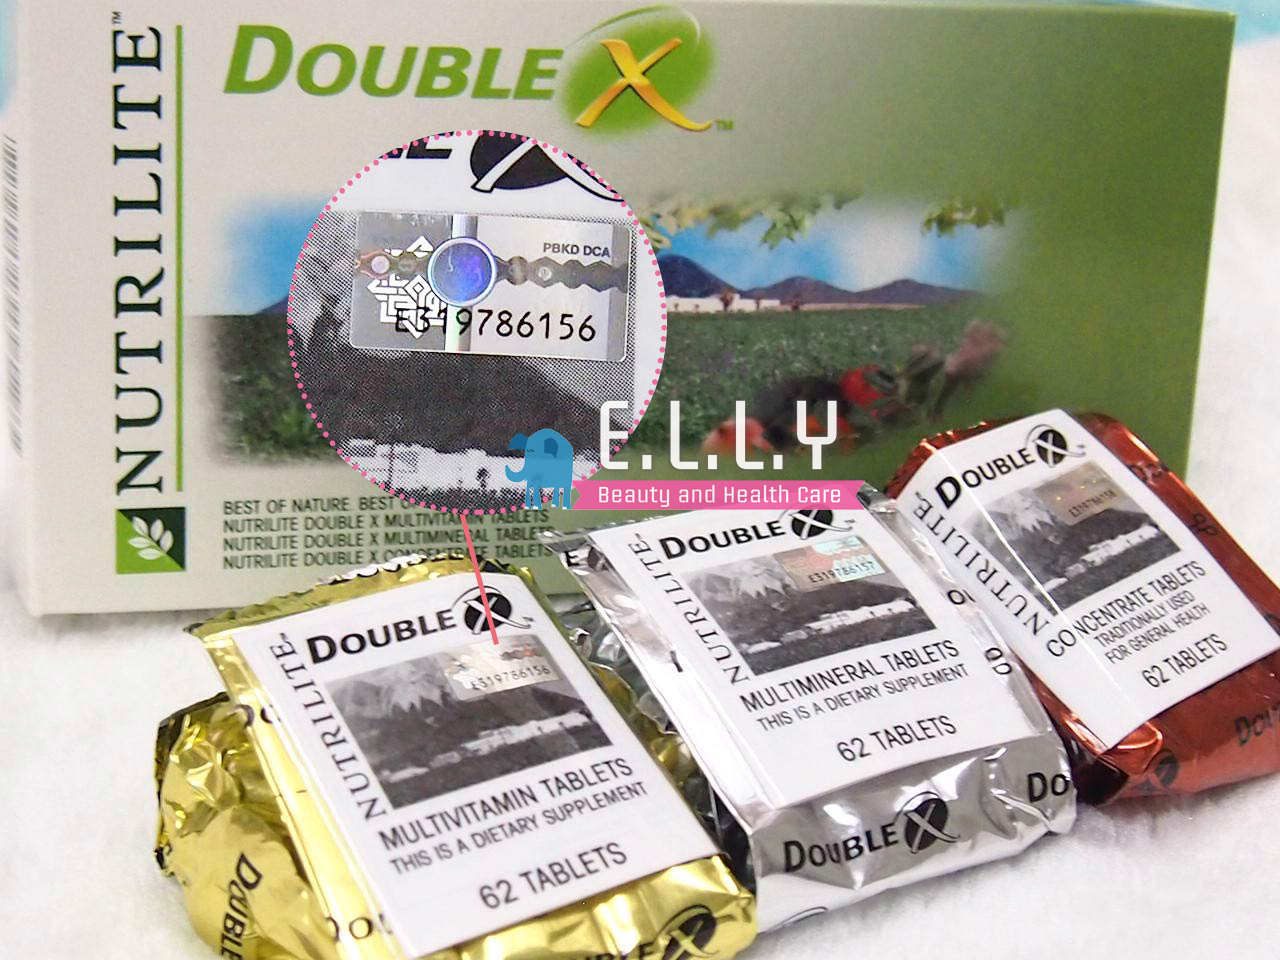 Double x tablets